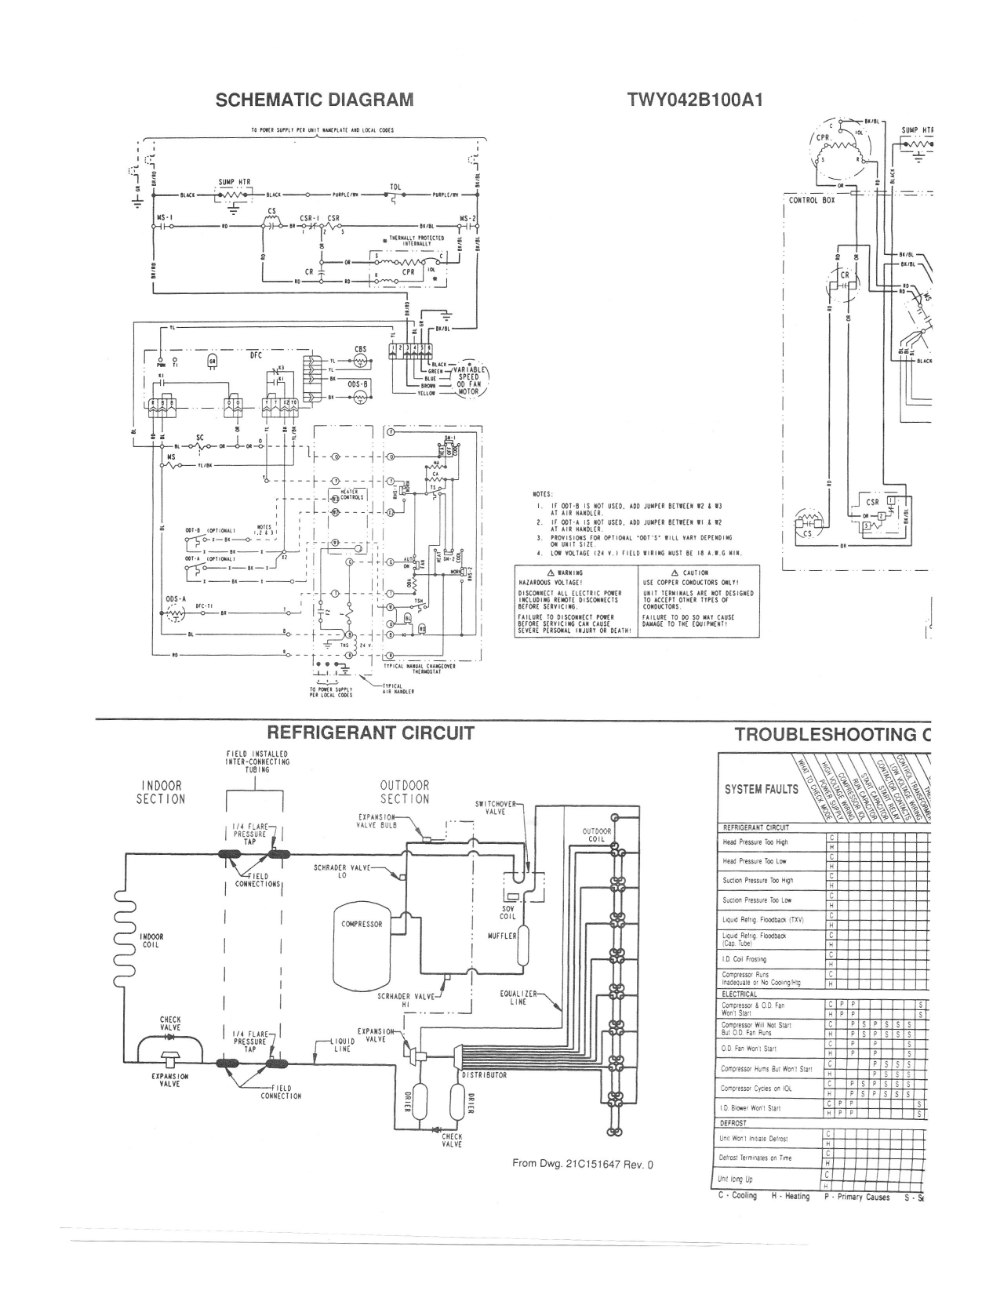 Trane Xe 1200 Wiring Diagram | Wiring Diagram | rob in 2019